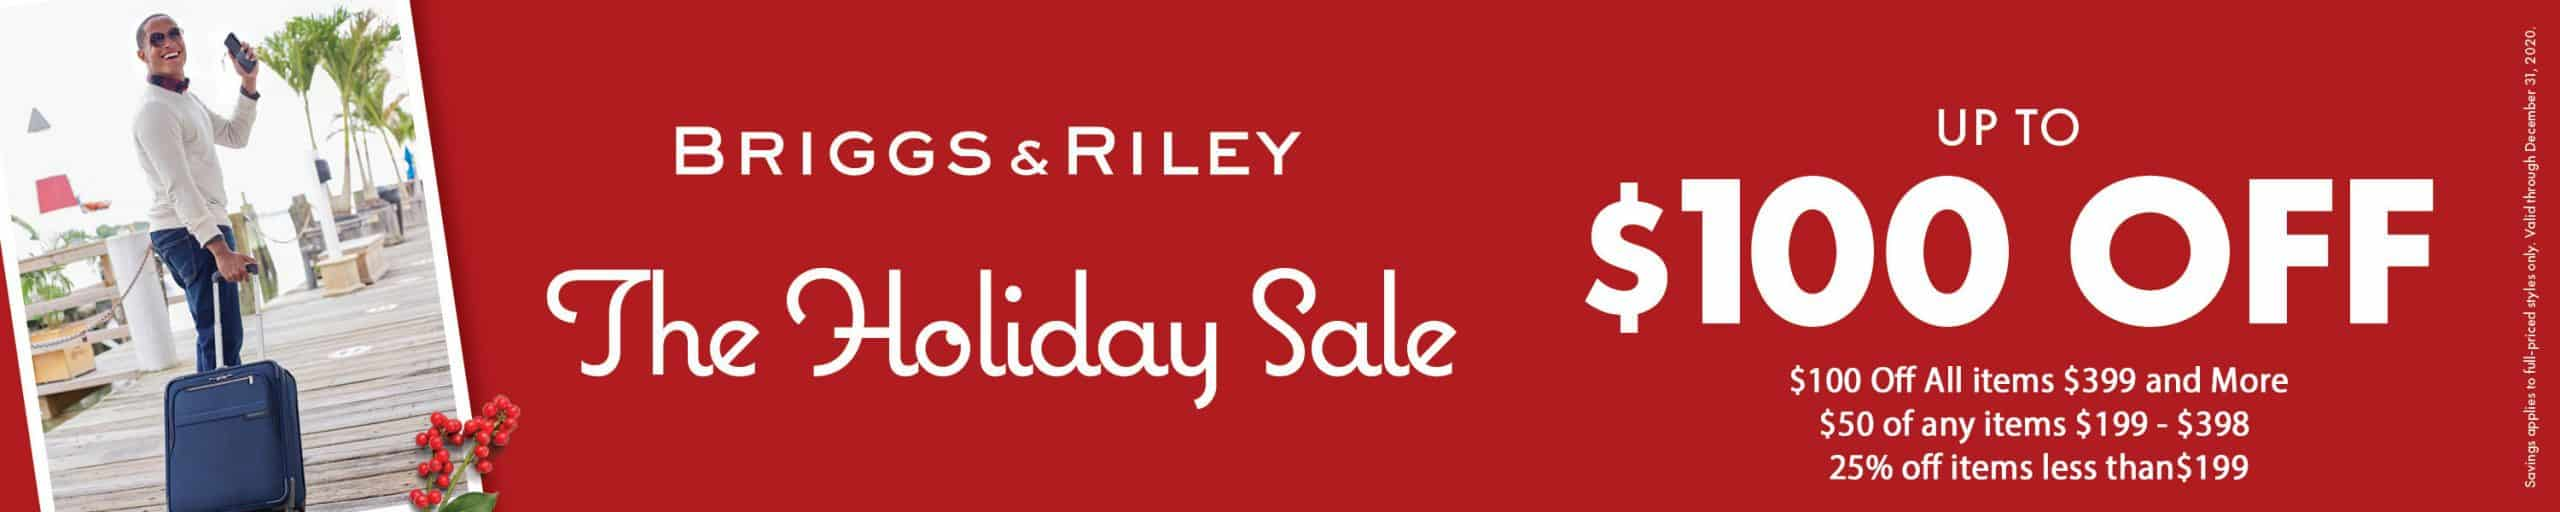 Traveling-Bags-Brigge-Riley-Holiday Luggage sale 2020-Sale